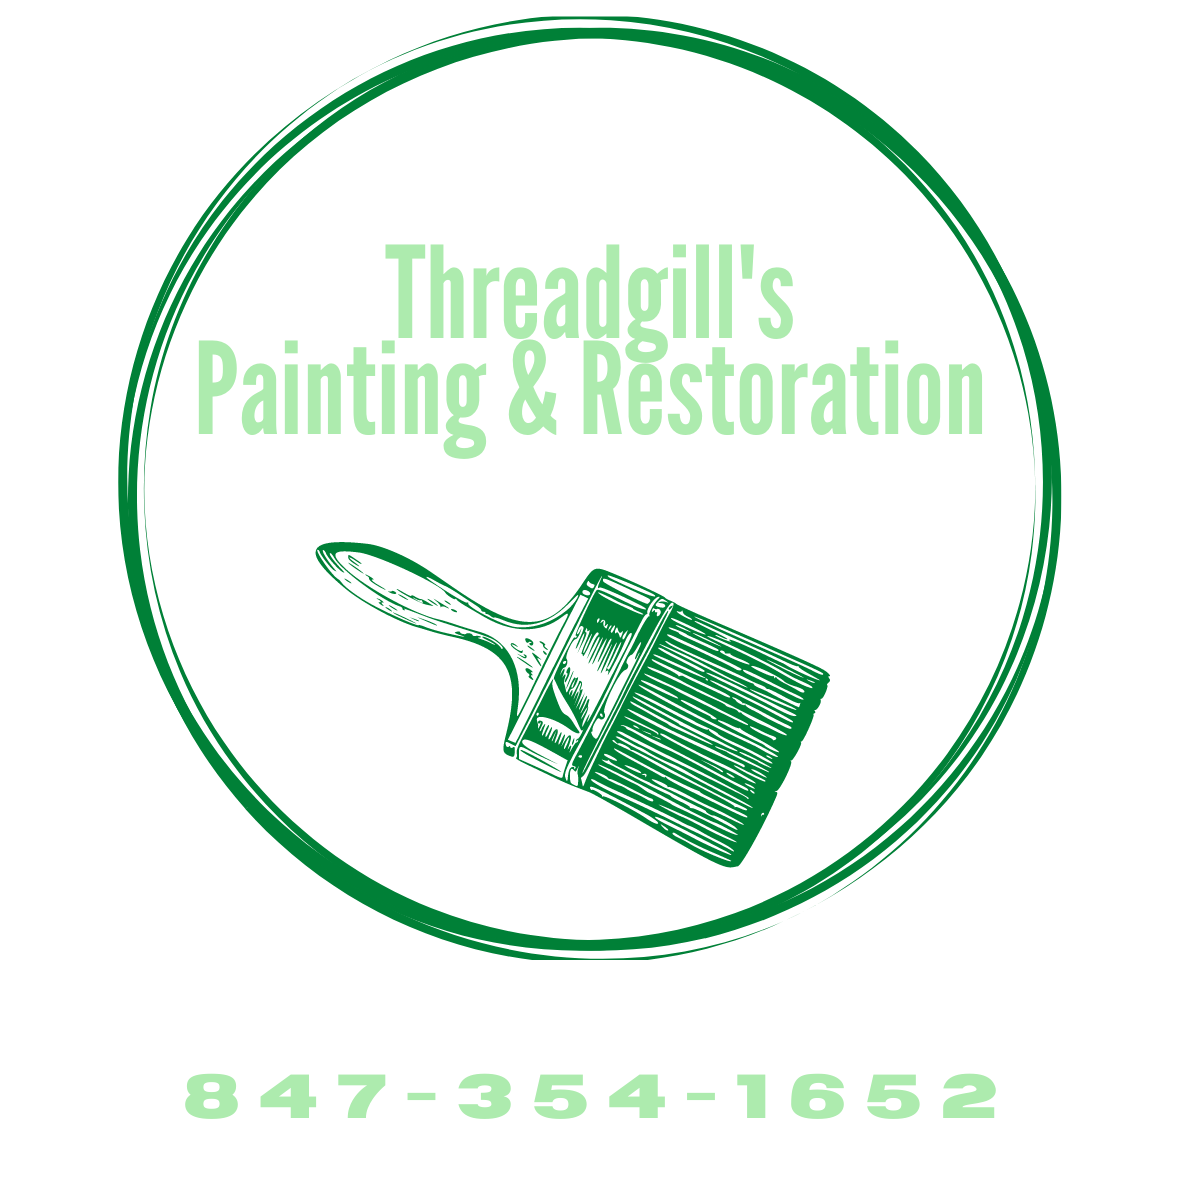 Threadgill's Painting & Restoration Inc